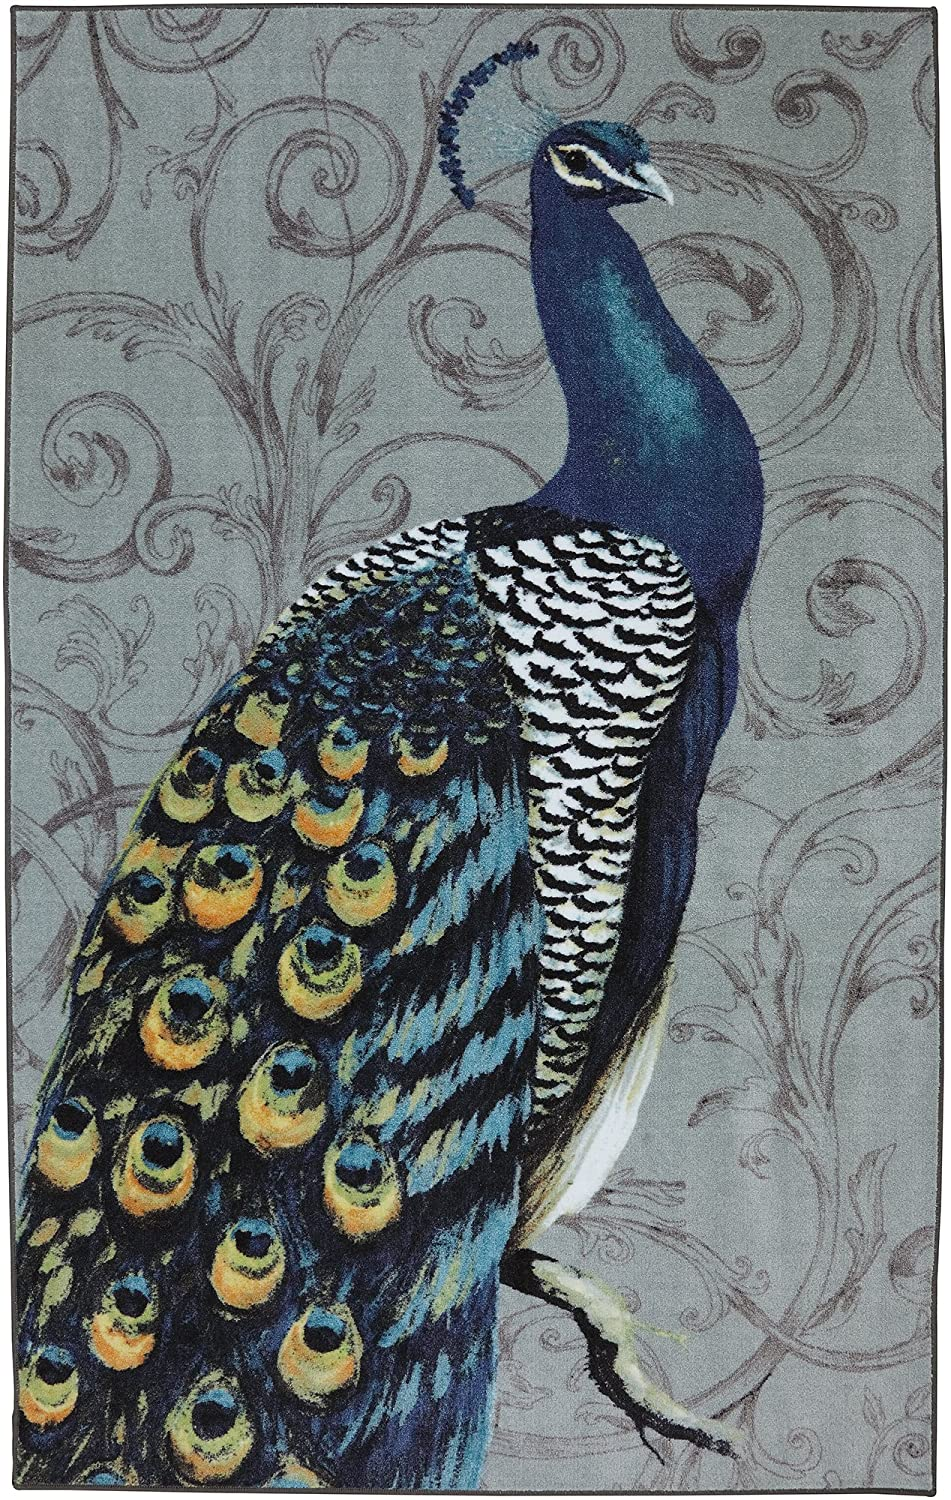 Peacock bathroom rug - Amazon Com Mohawk Home New Wave Peacock Feathers Printed Area Rug 5 X8 Grey Kitchen Dining